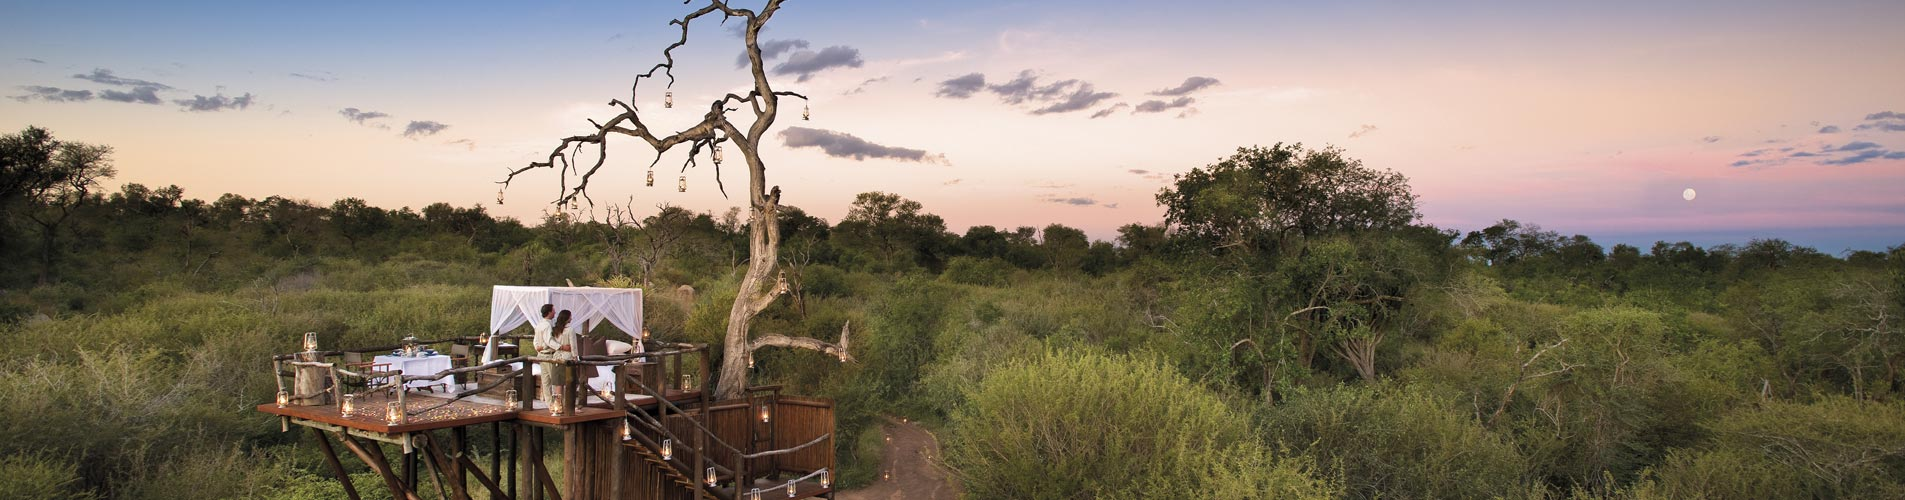 Custom Safaris, Romantic Treehouses